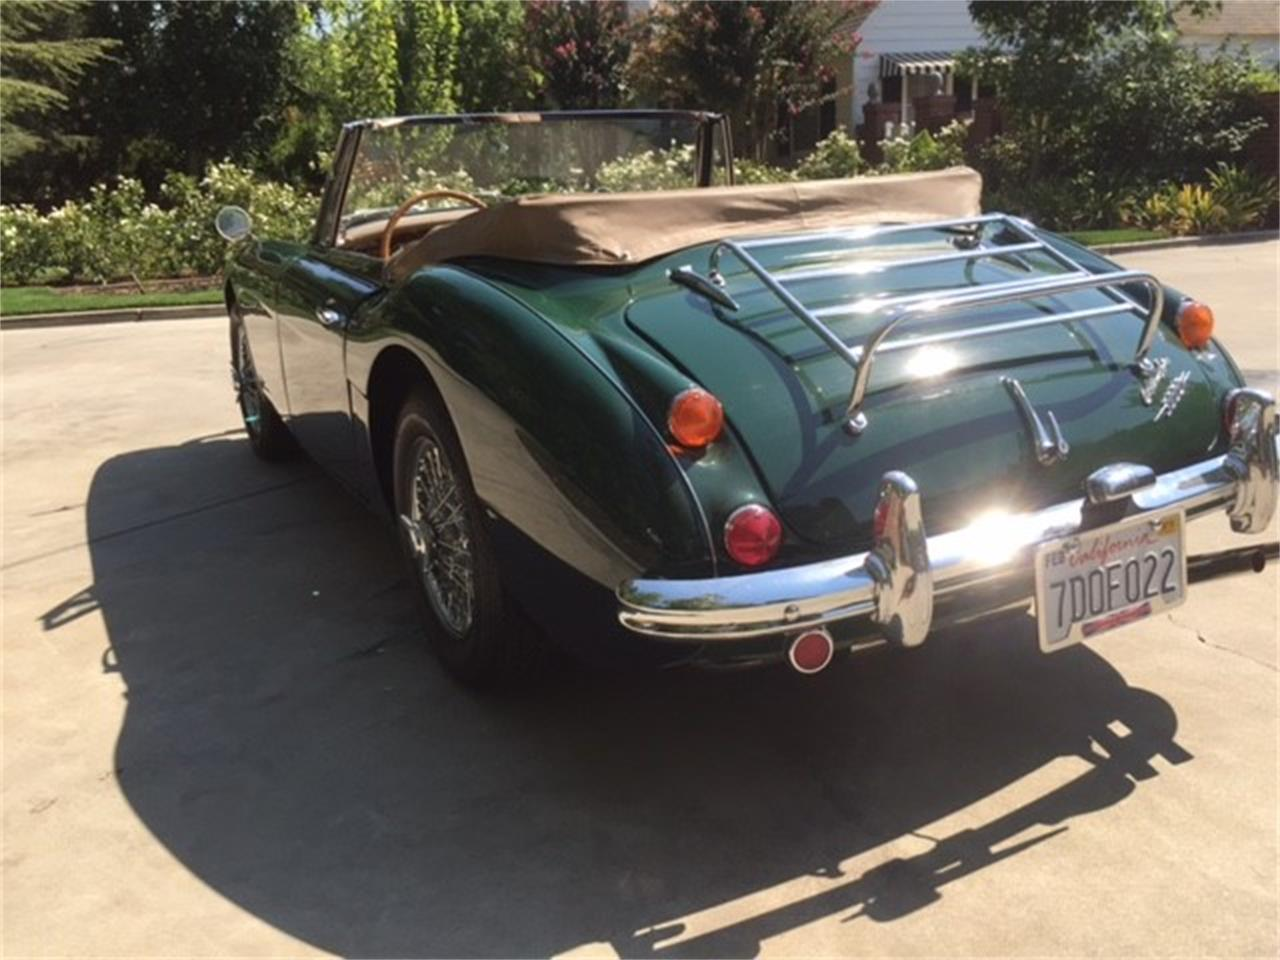 Large Picture of '67 Austin-Healey 3000 located in Fresno California Offered by a Private Seller - LBWQ